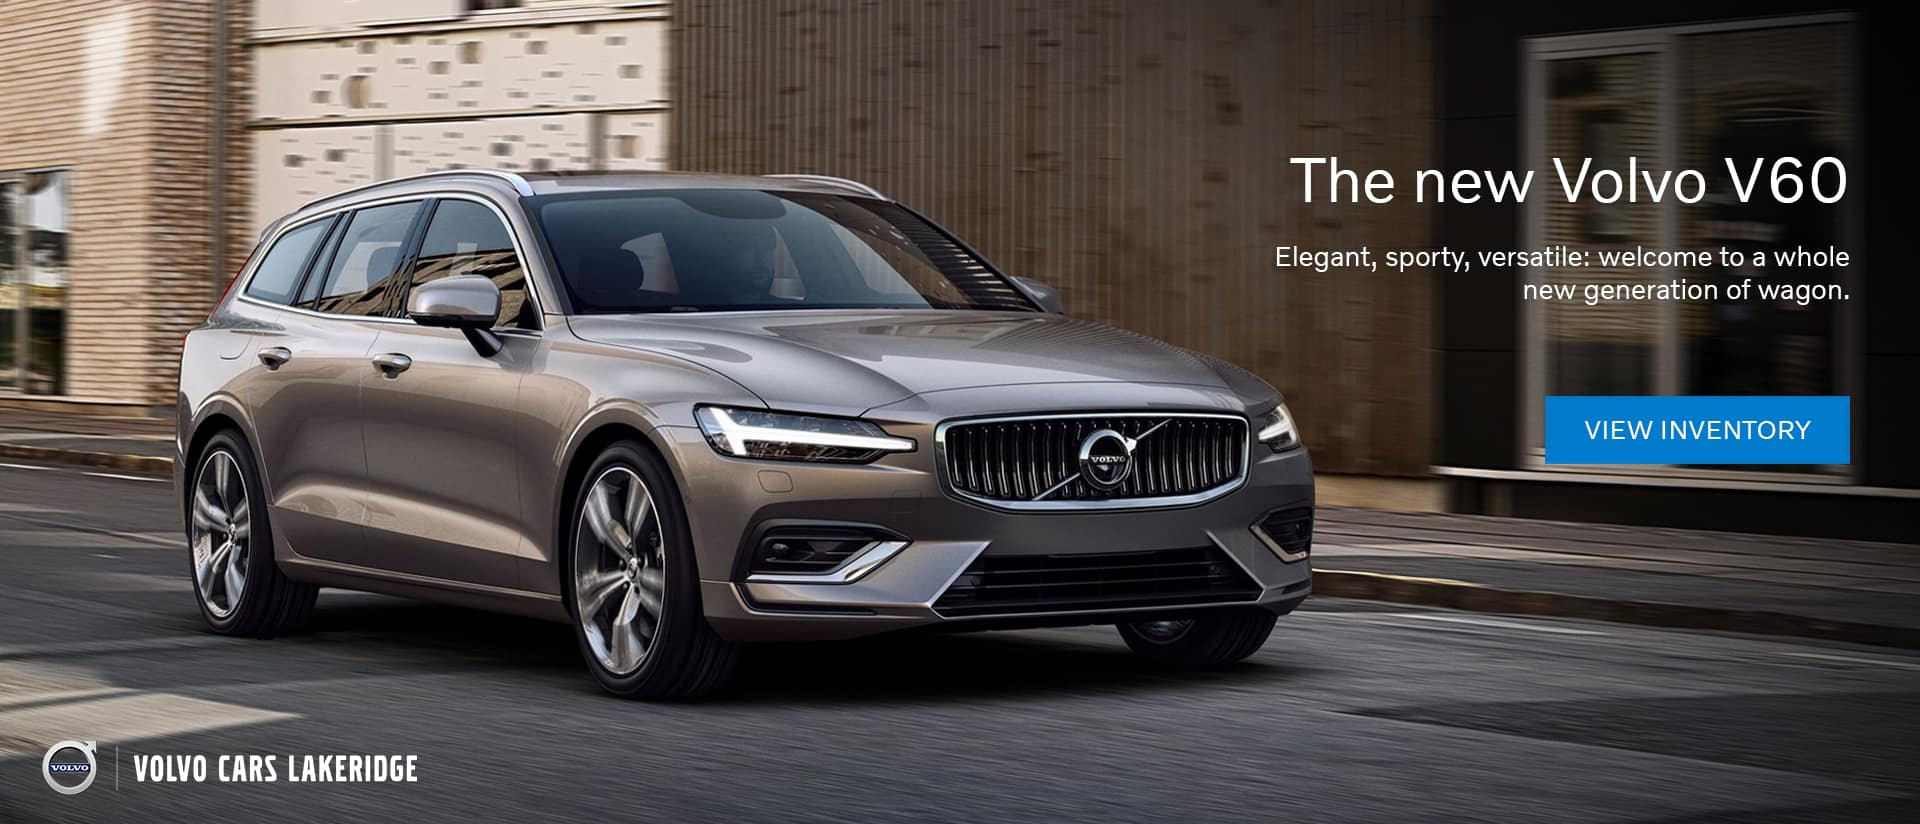 volvo v60 volvo cars lakeridge